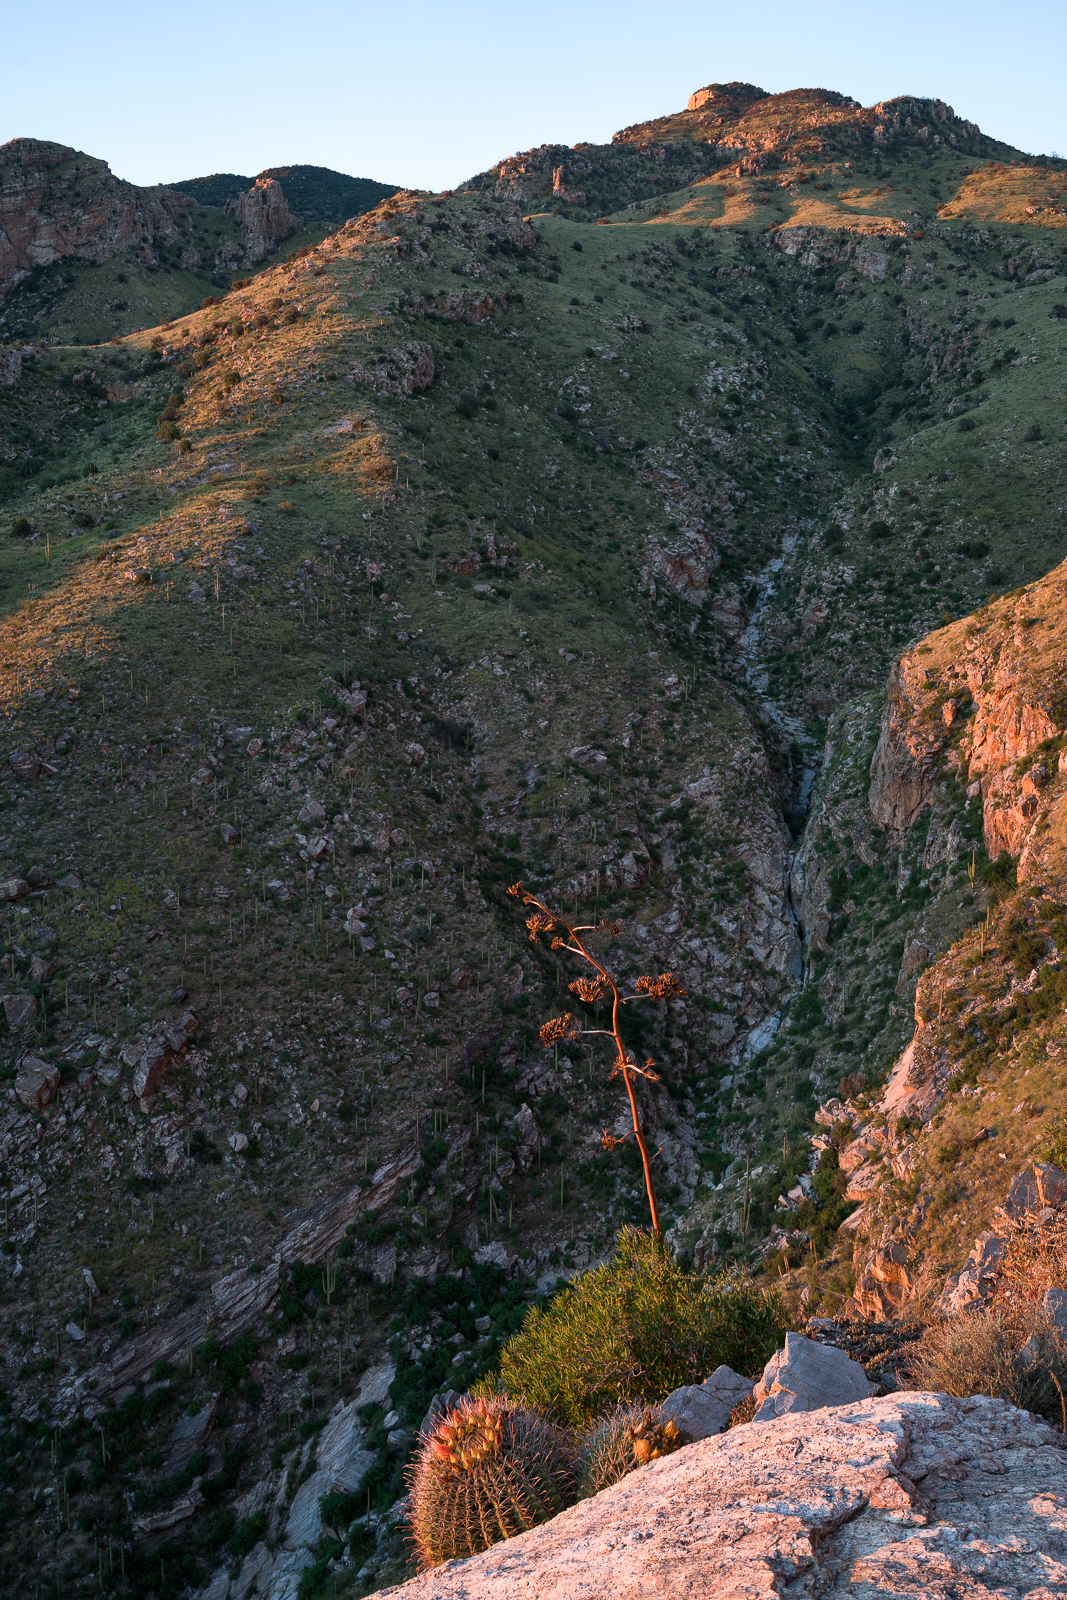 Pontatoc Canyon in shadow at sunset from the end of the Pontatoc Ridge Trail. September 2016.